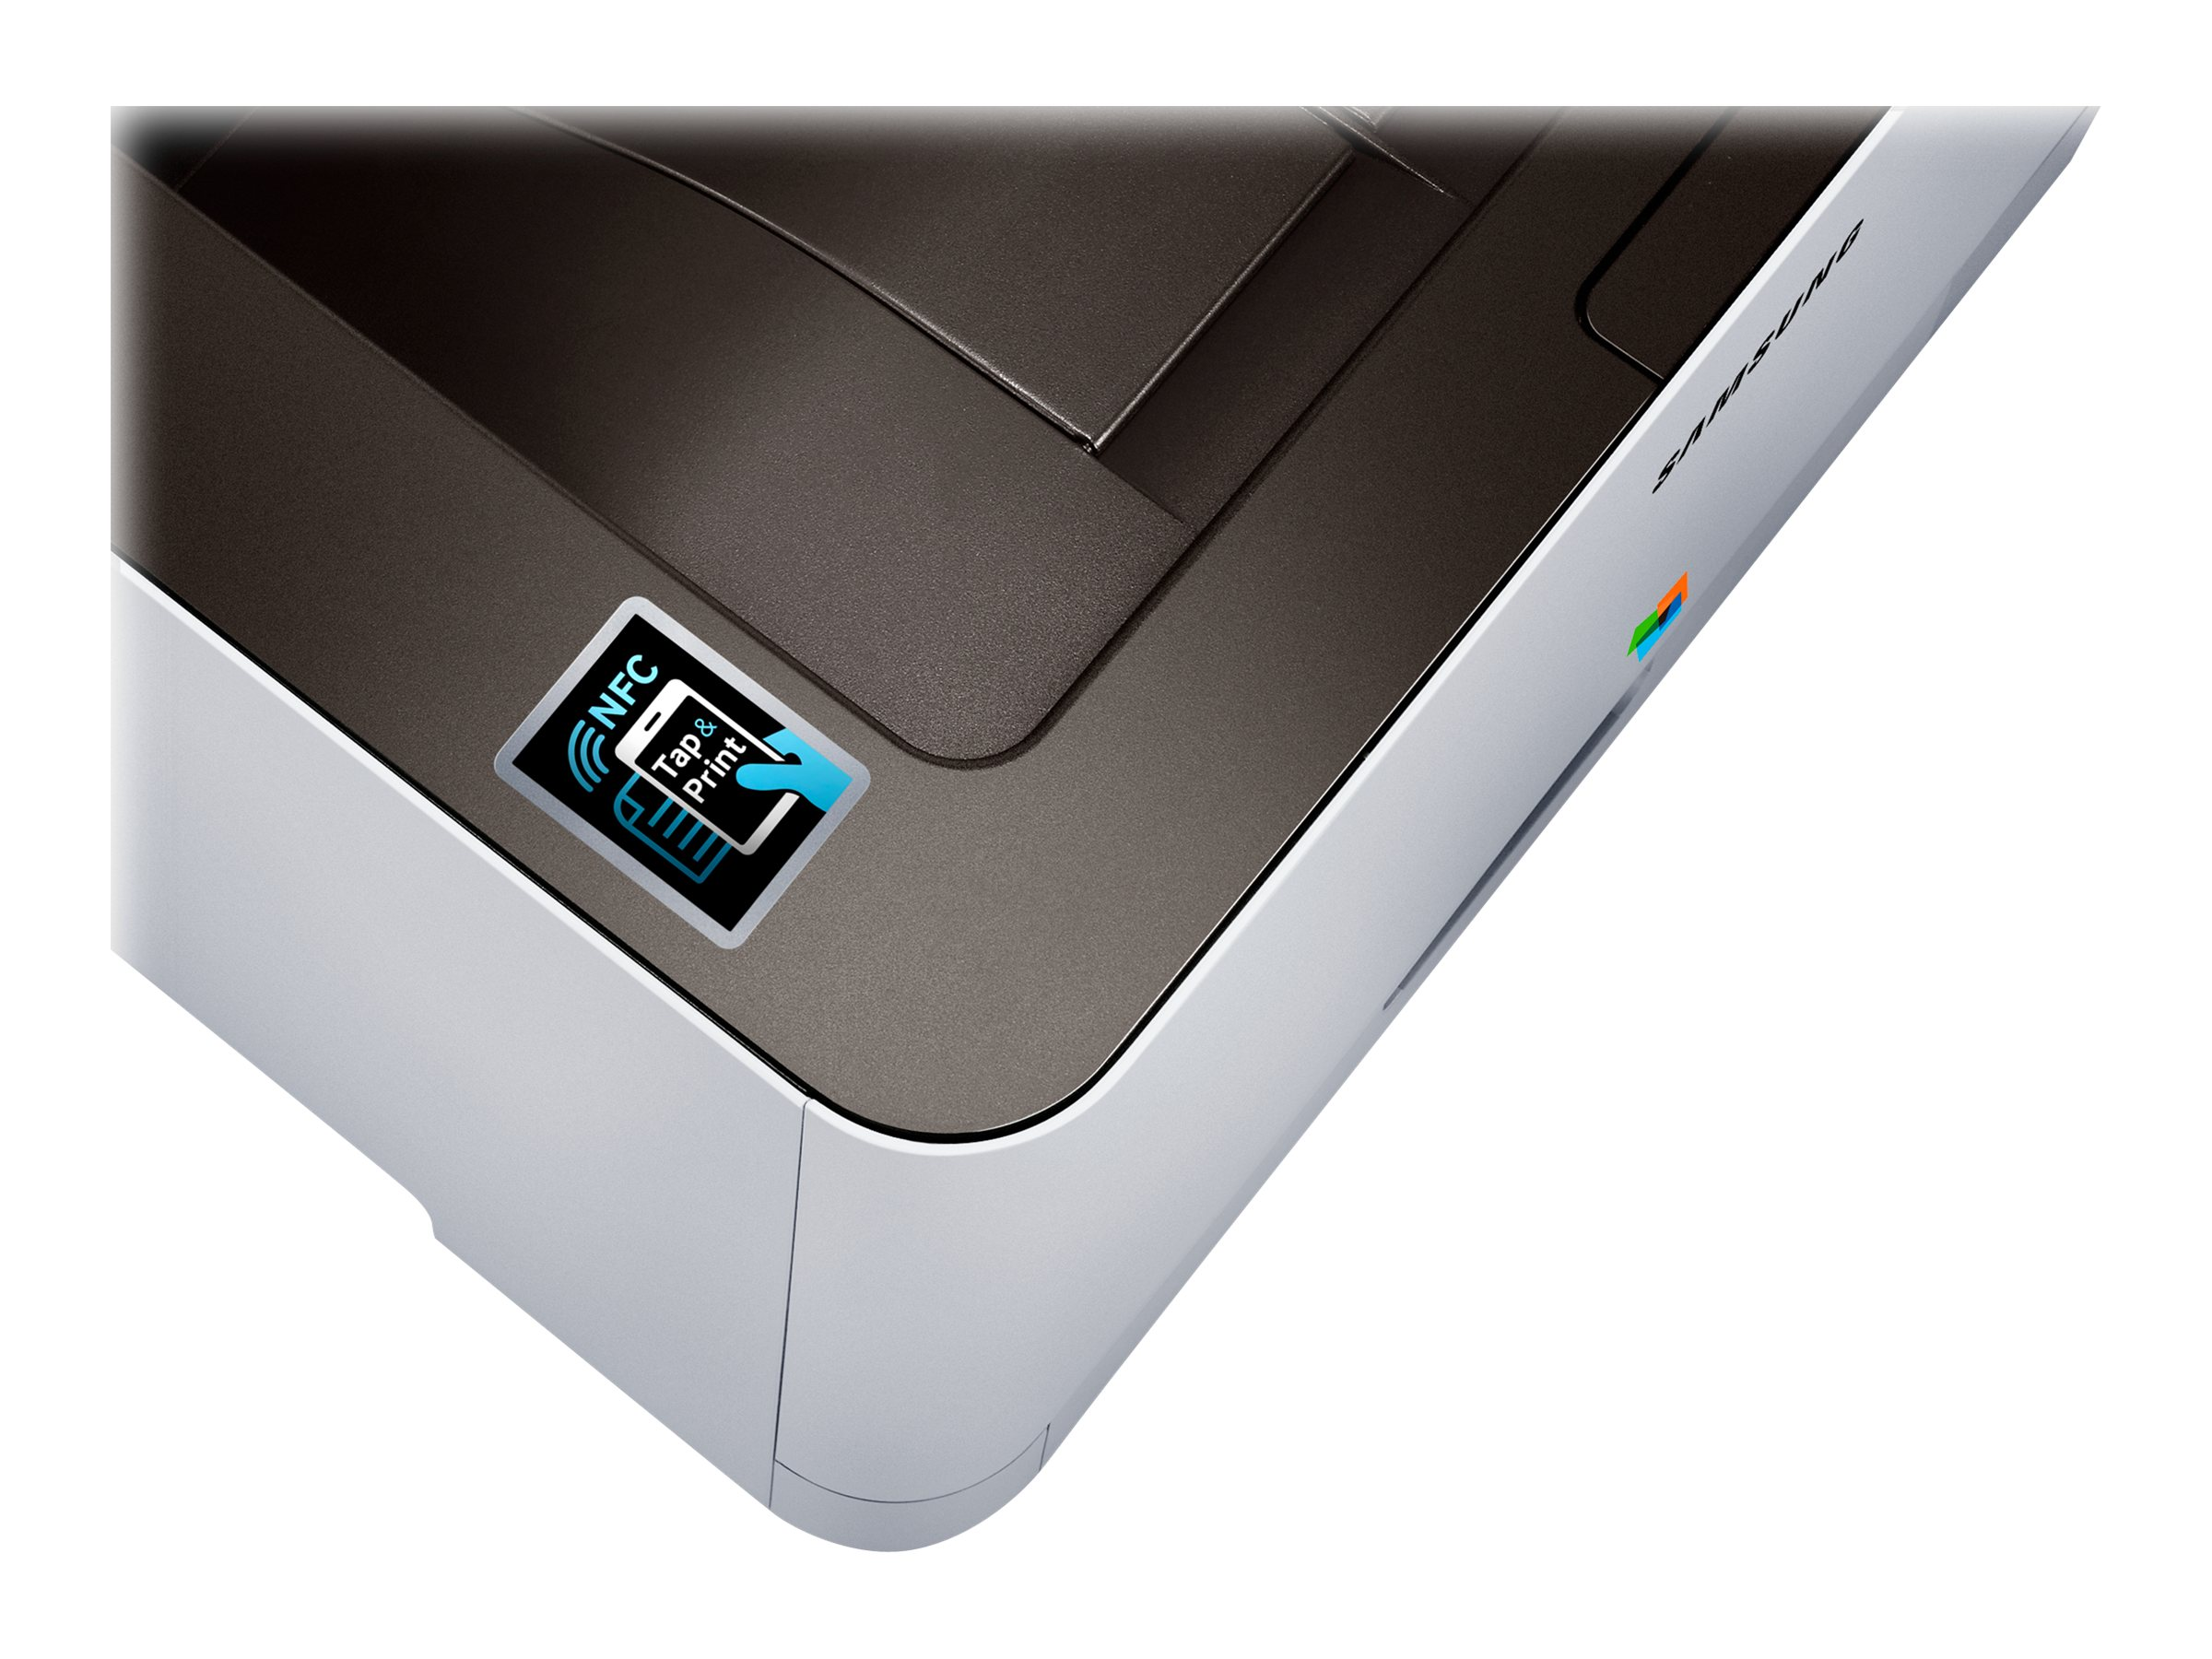 Samsung XPress C410W Color Laser Printer, SL-C410W/XAA